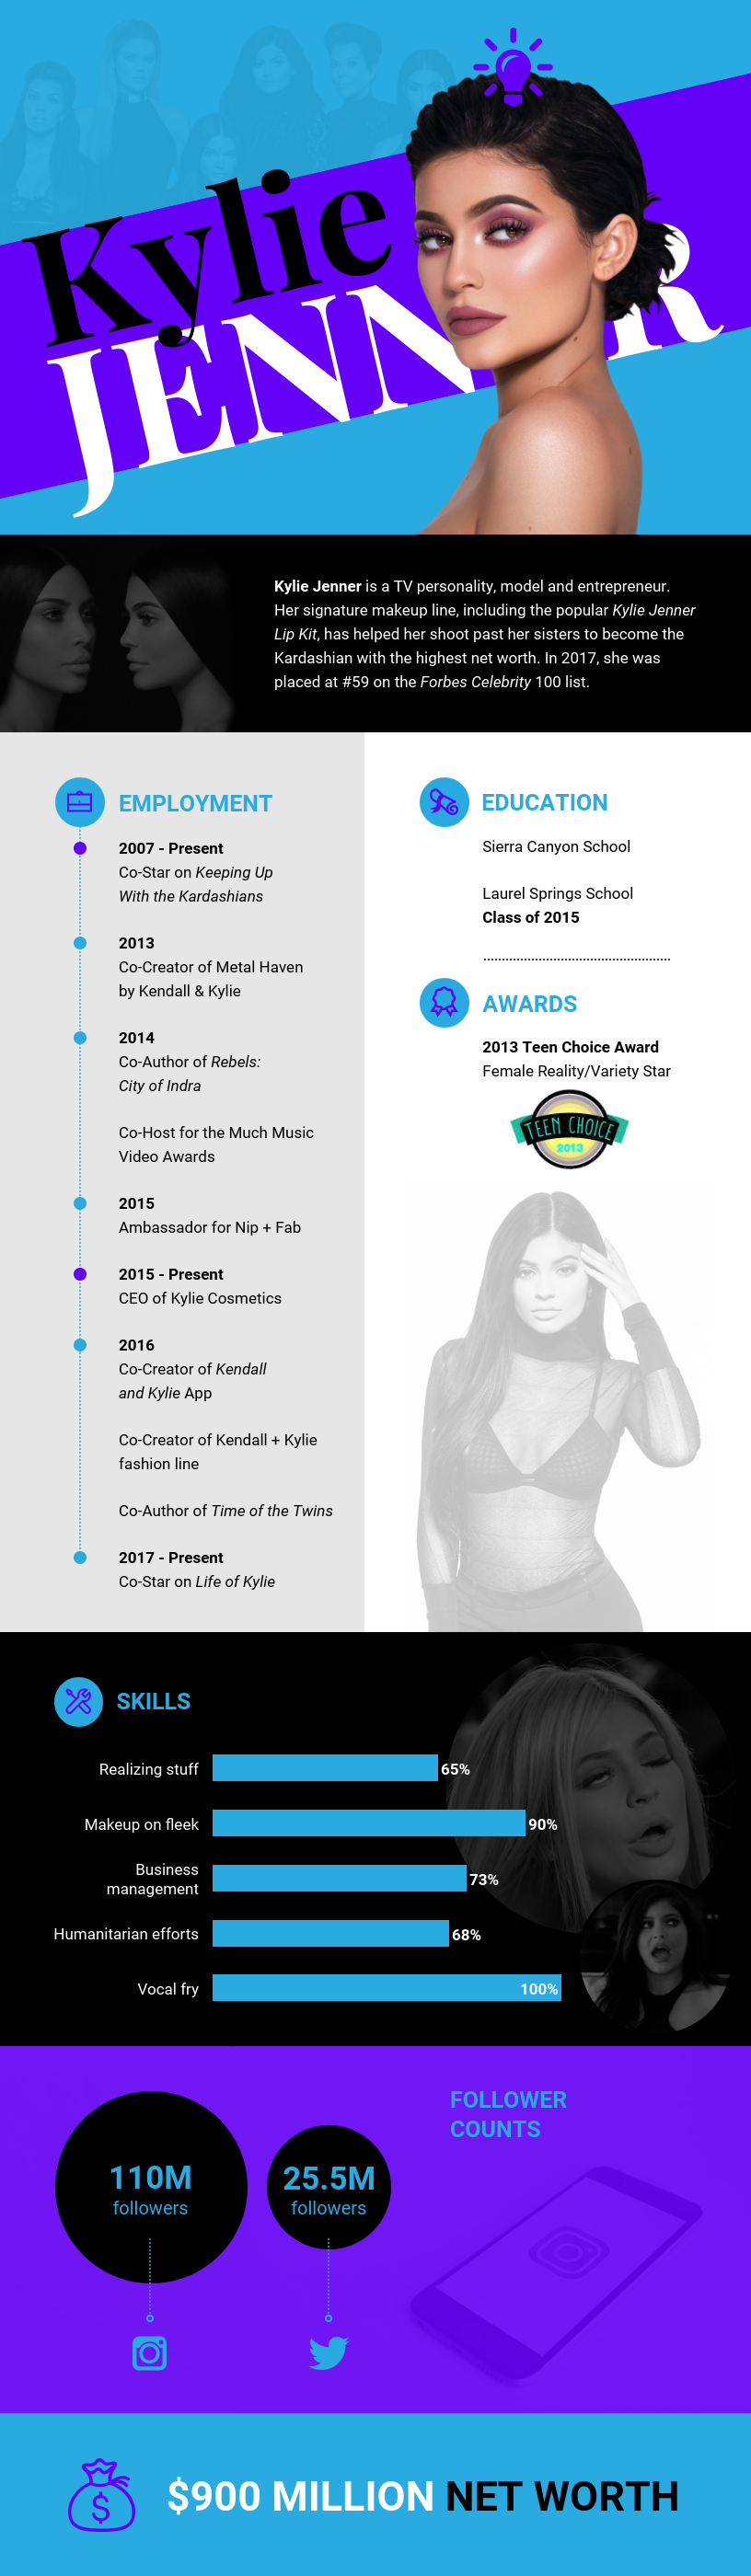 kylie jenner infographic resume